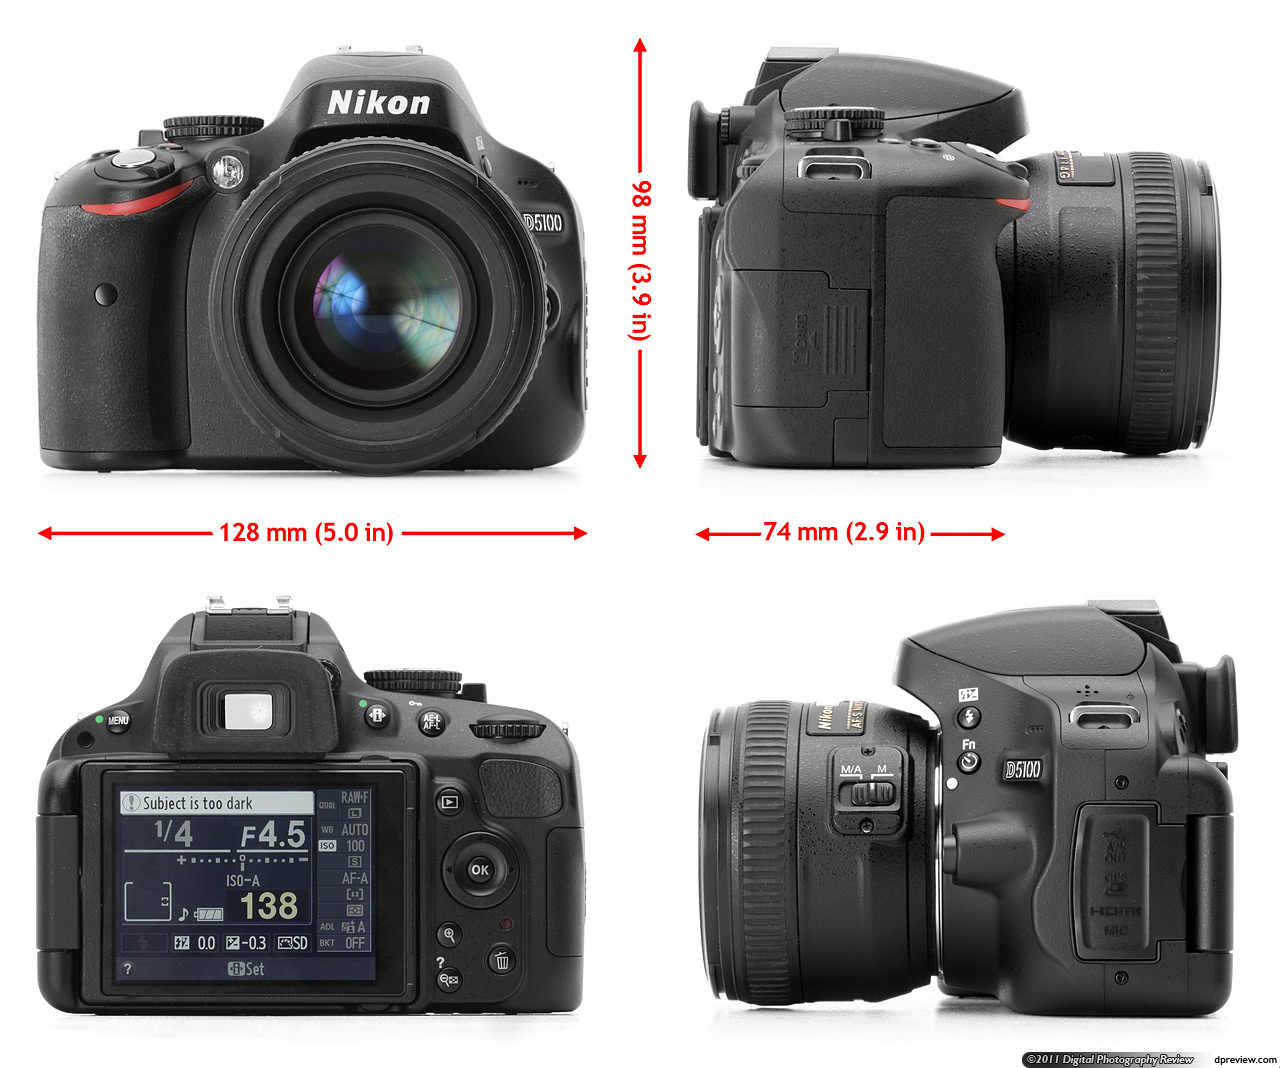 Reflex Camera Nikon D5100 Kit: review, features, reviews 13